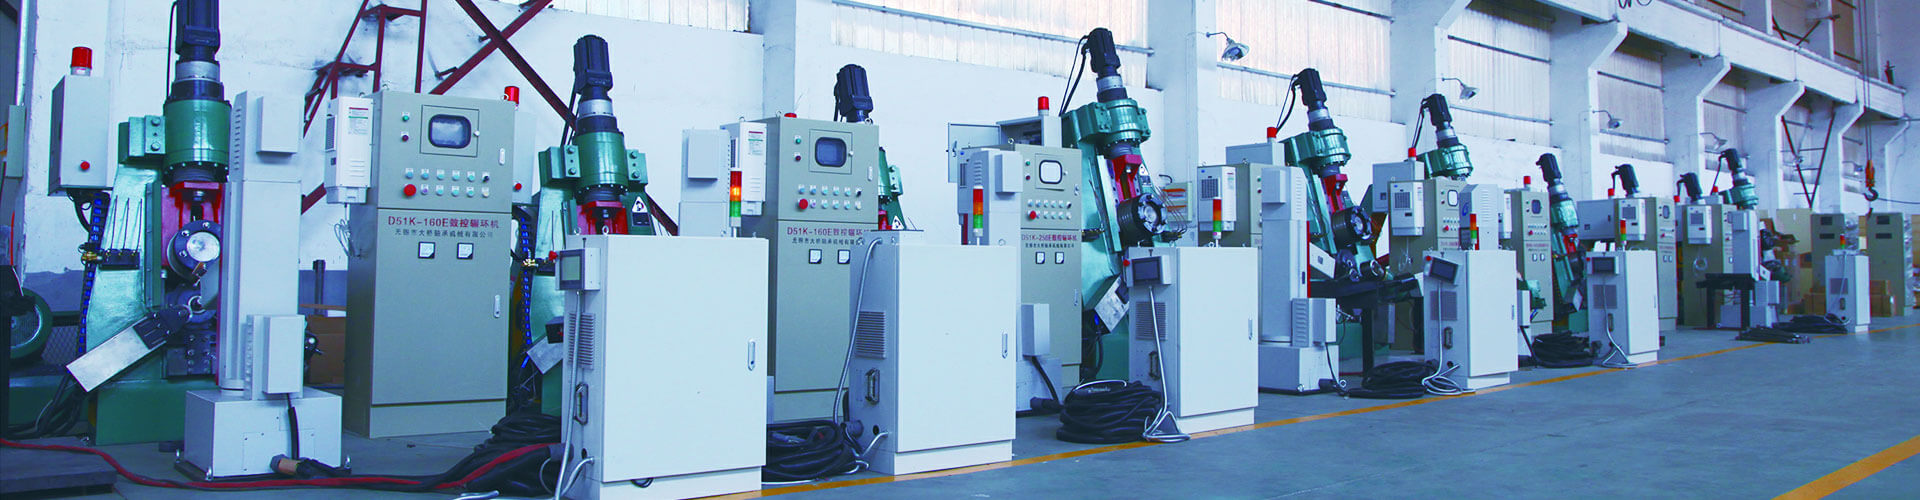 NC Ring rolling machine withrobots